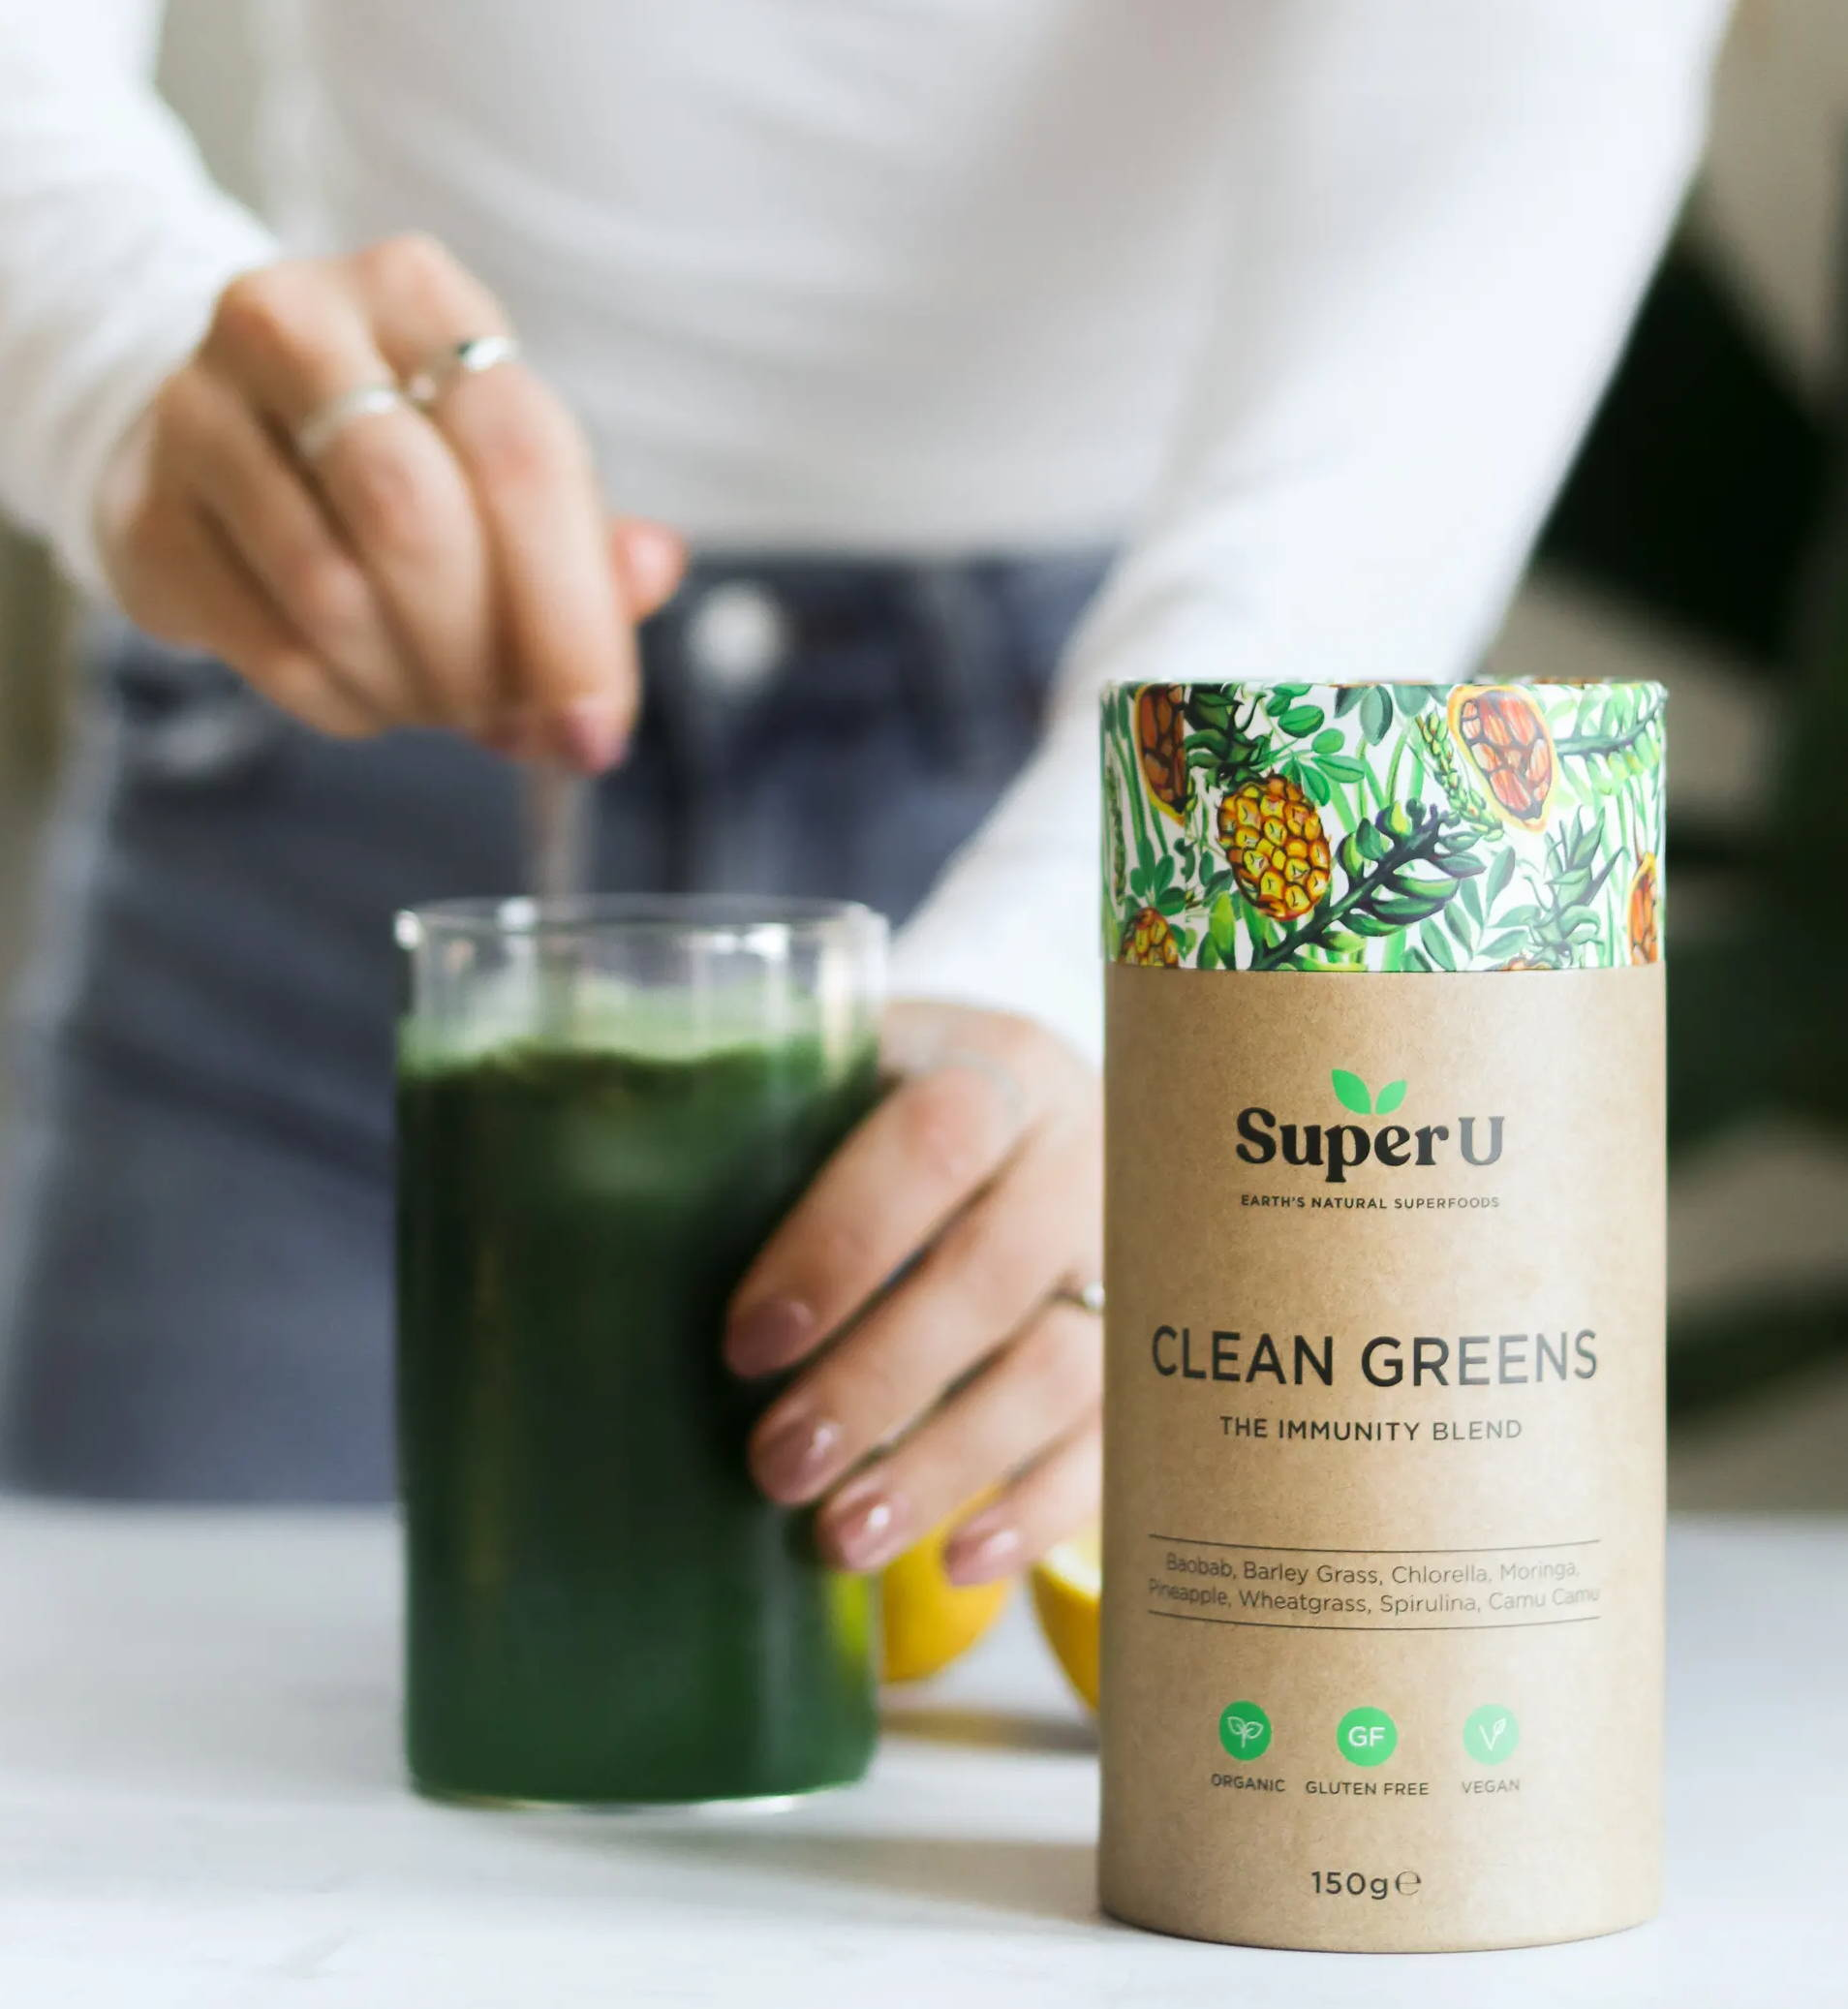 Mixing a greens powder with water to boost the immune system